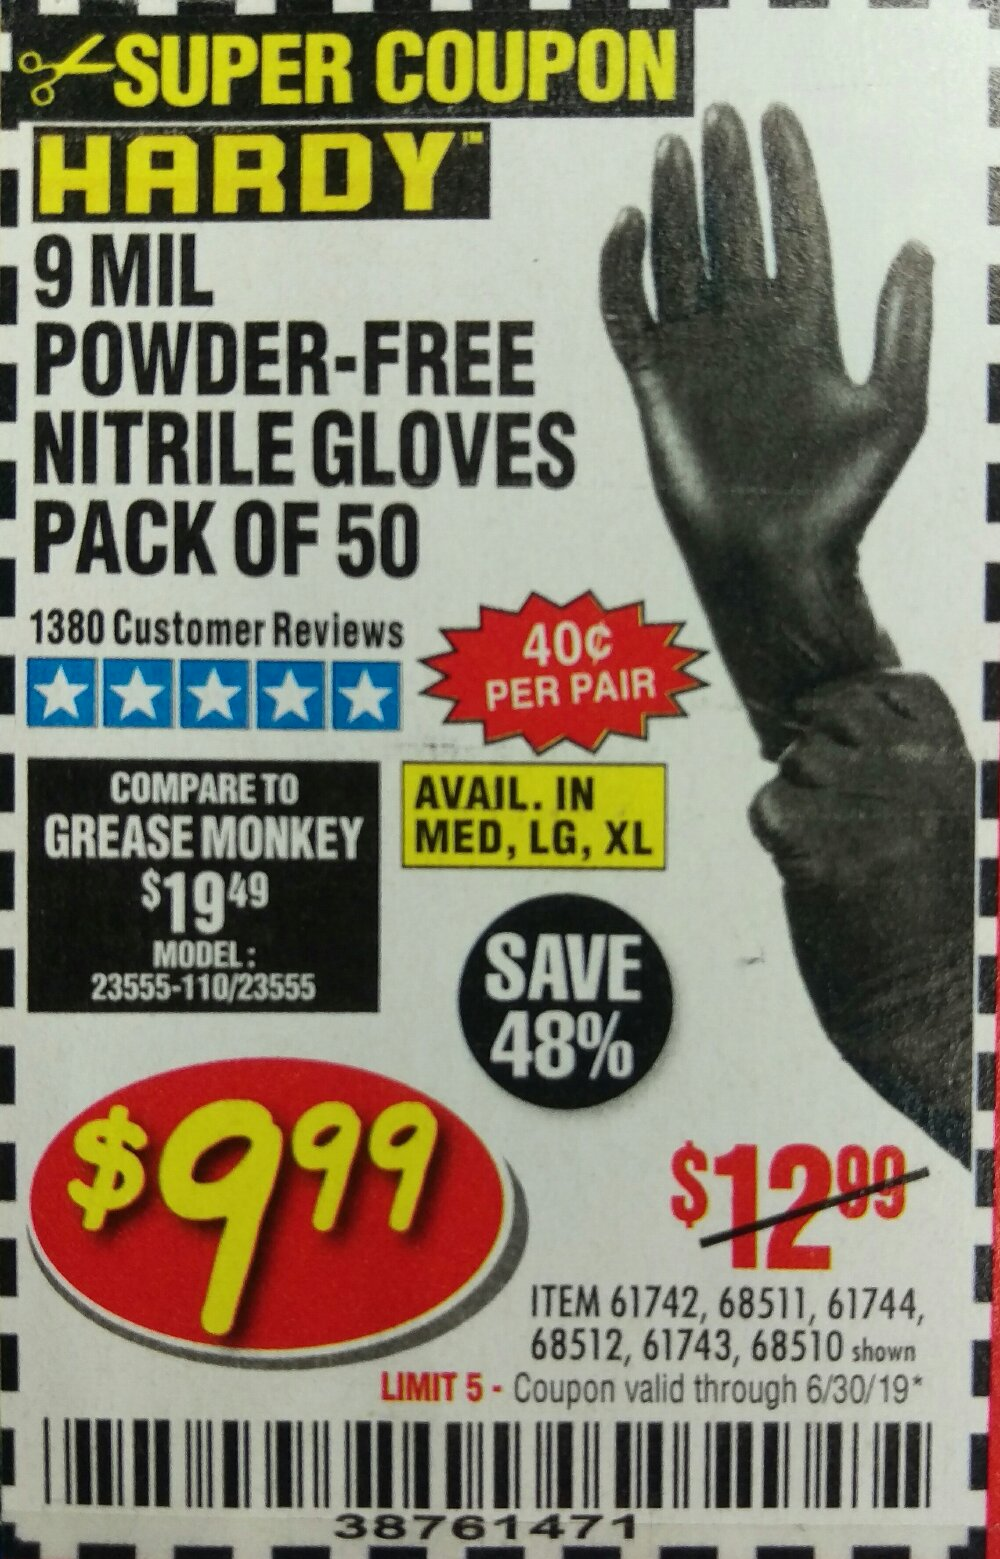 Harbor Freight Coupon, HF Coupons - Powder-free Nitrile Gloves Pack Of 50